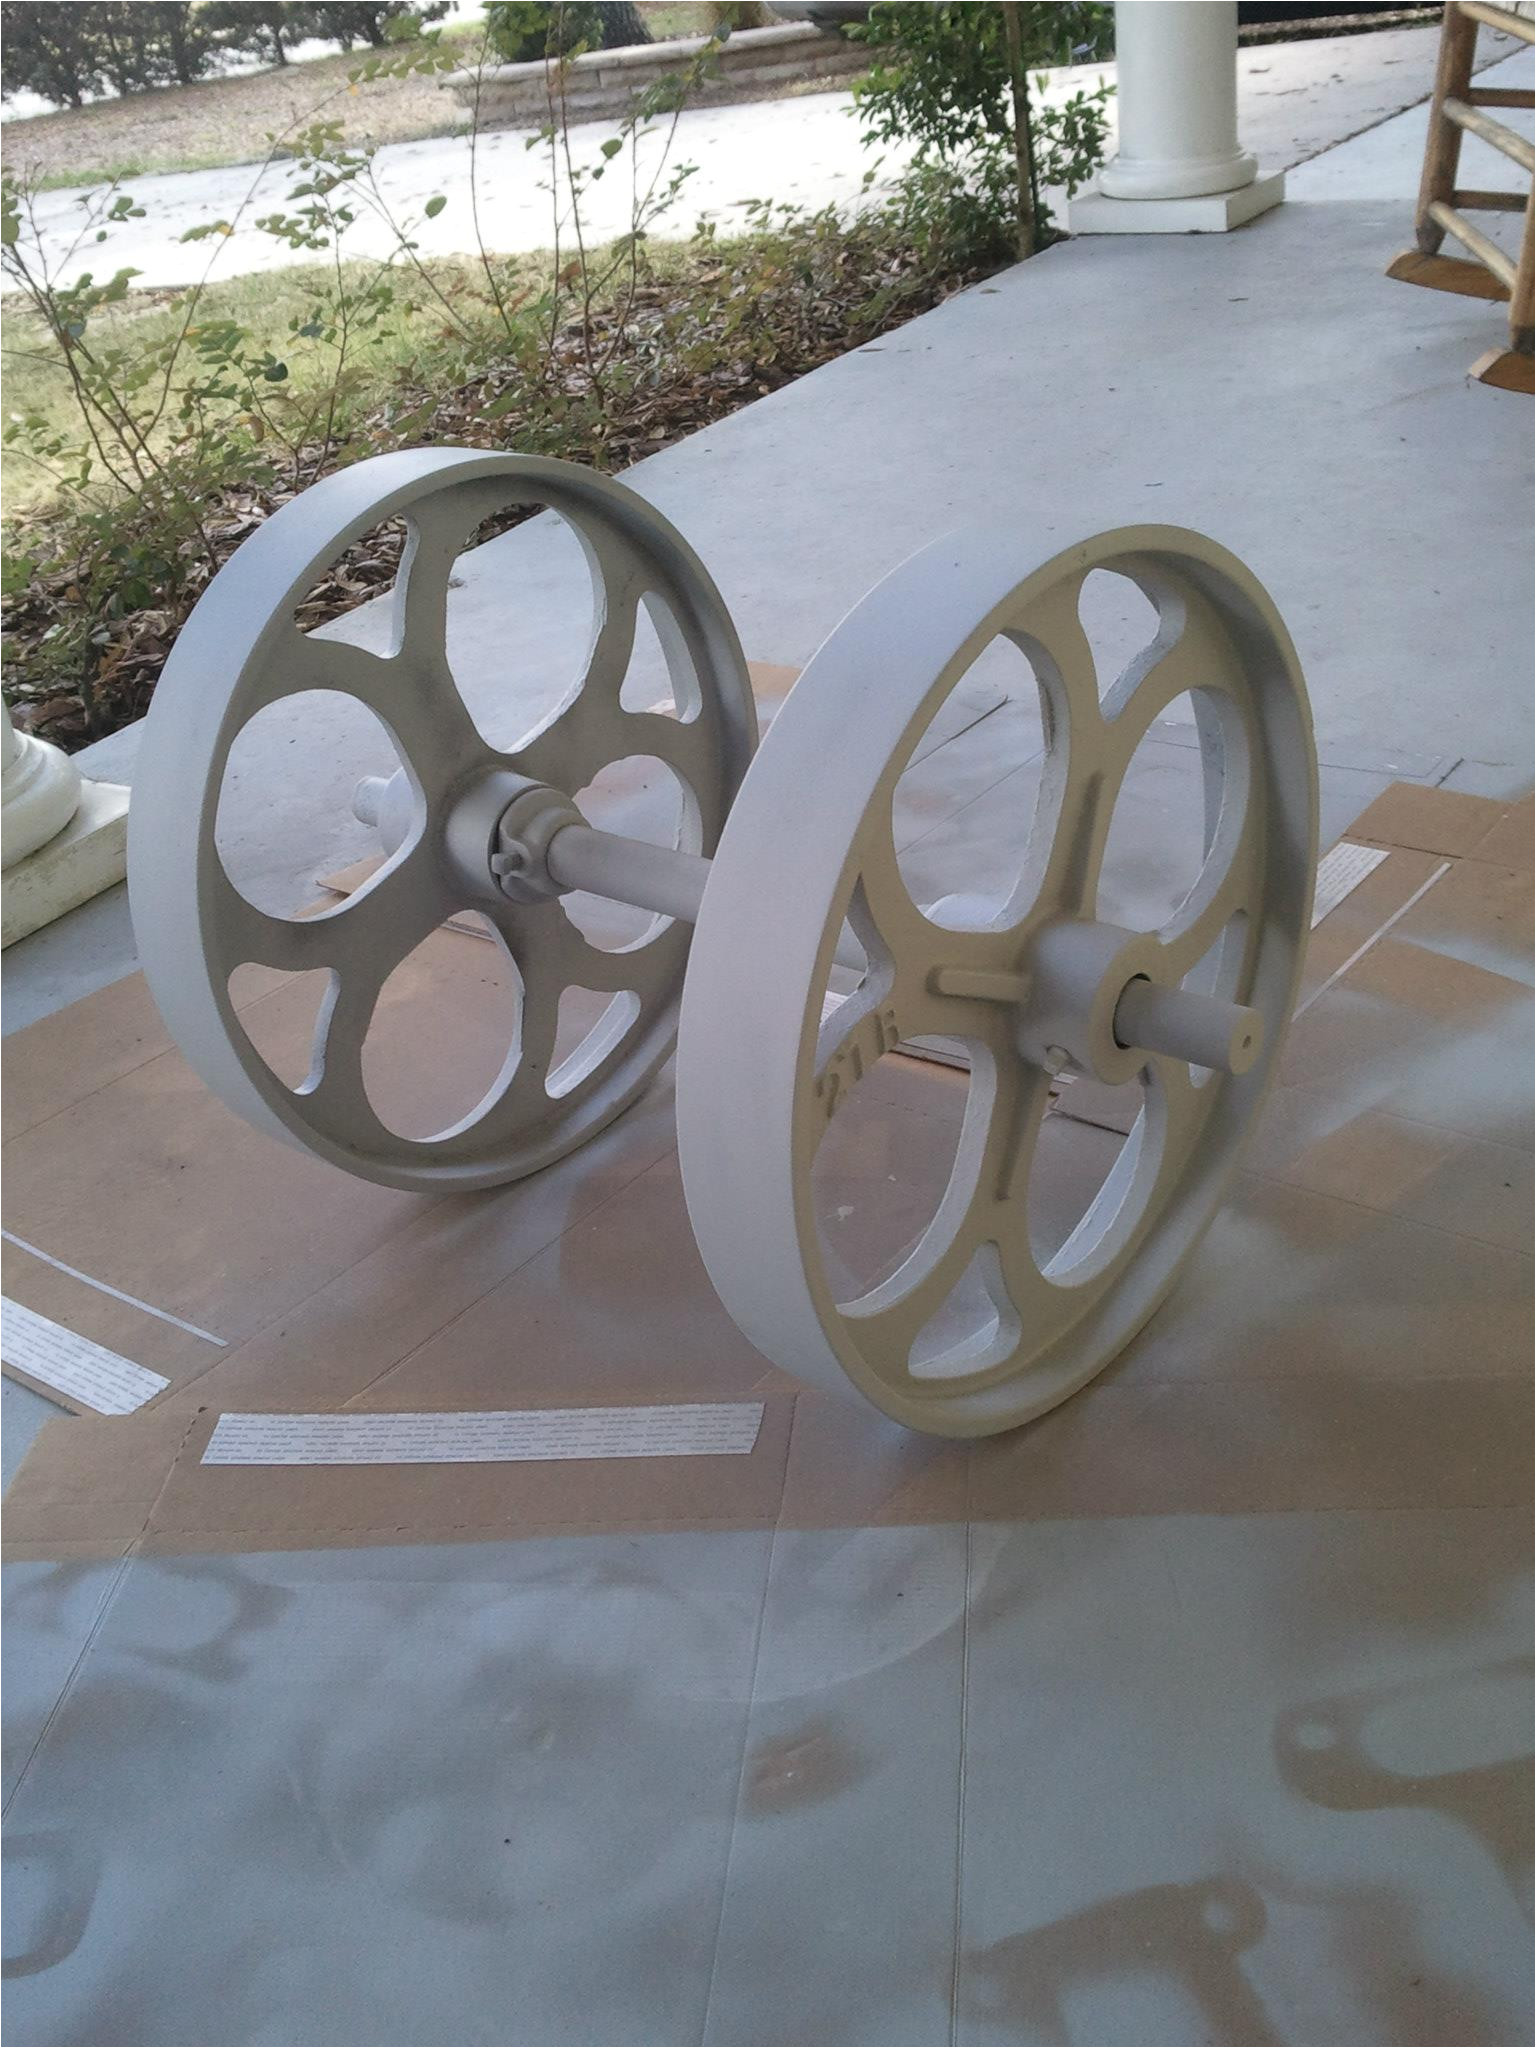 the big wheel fully primed after drying it will be ready for final painting